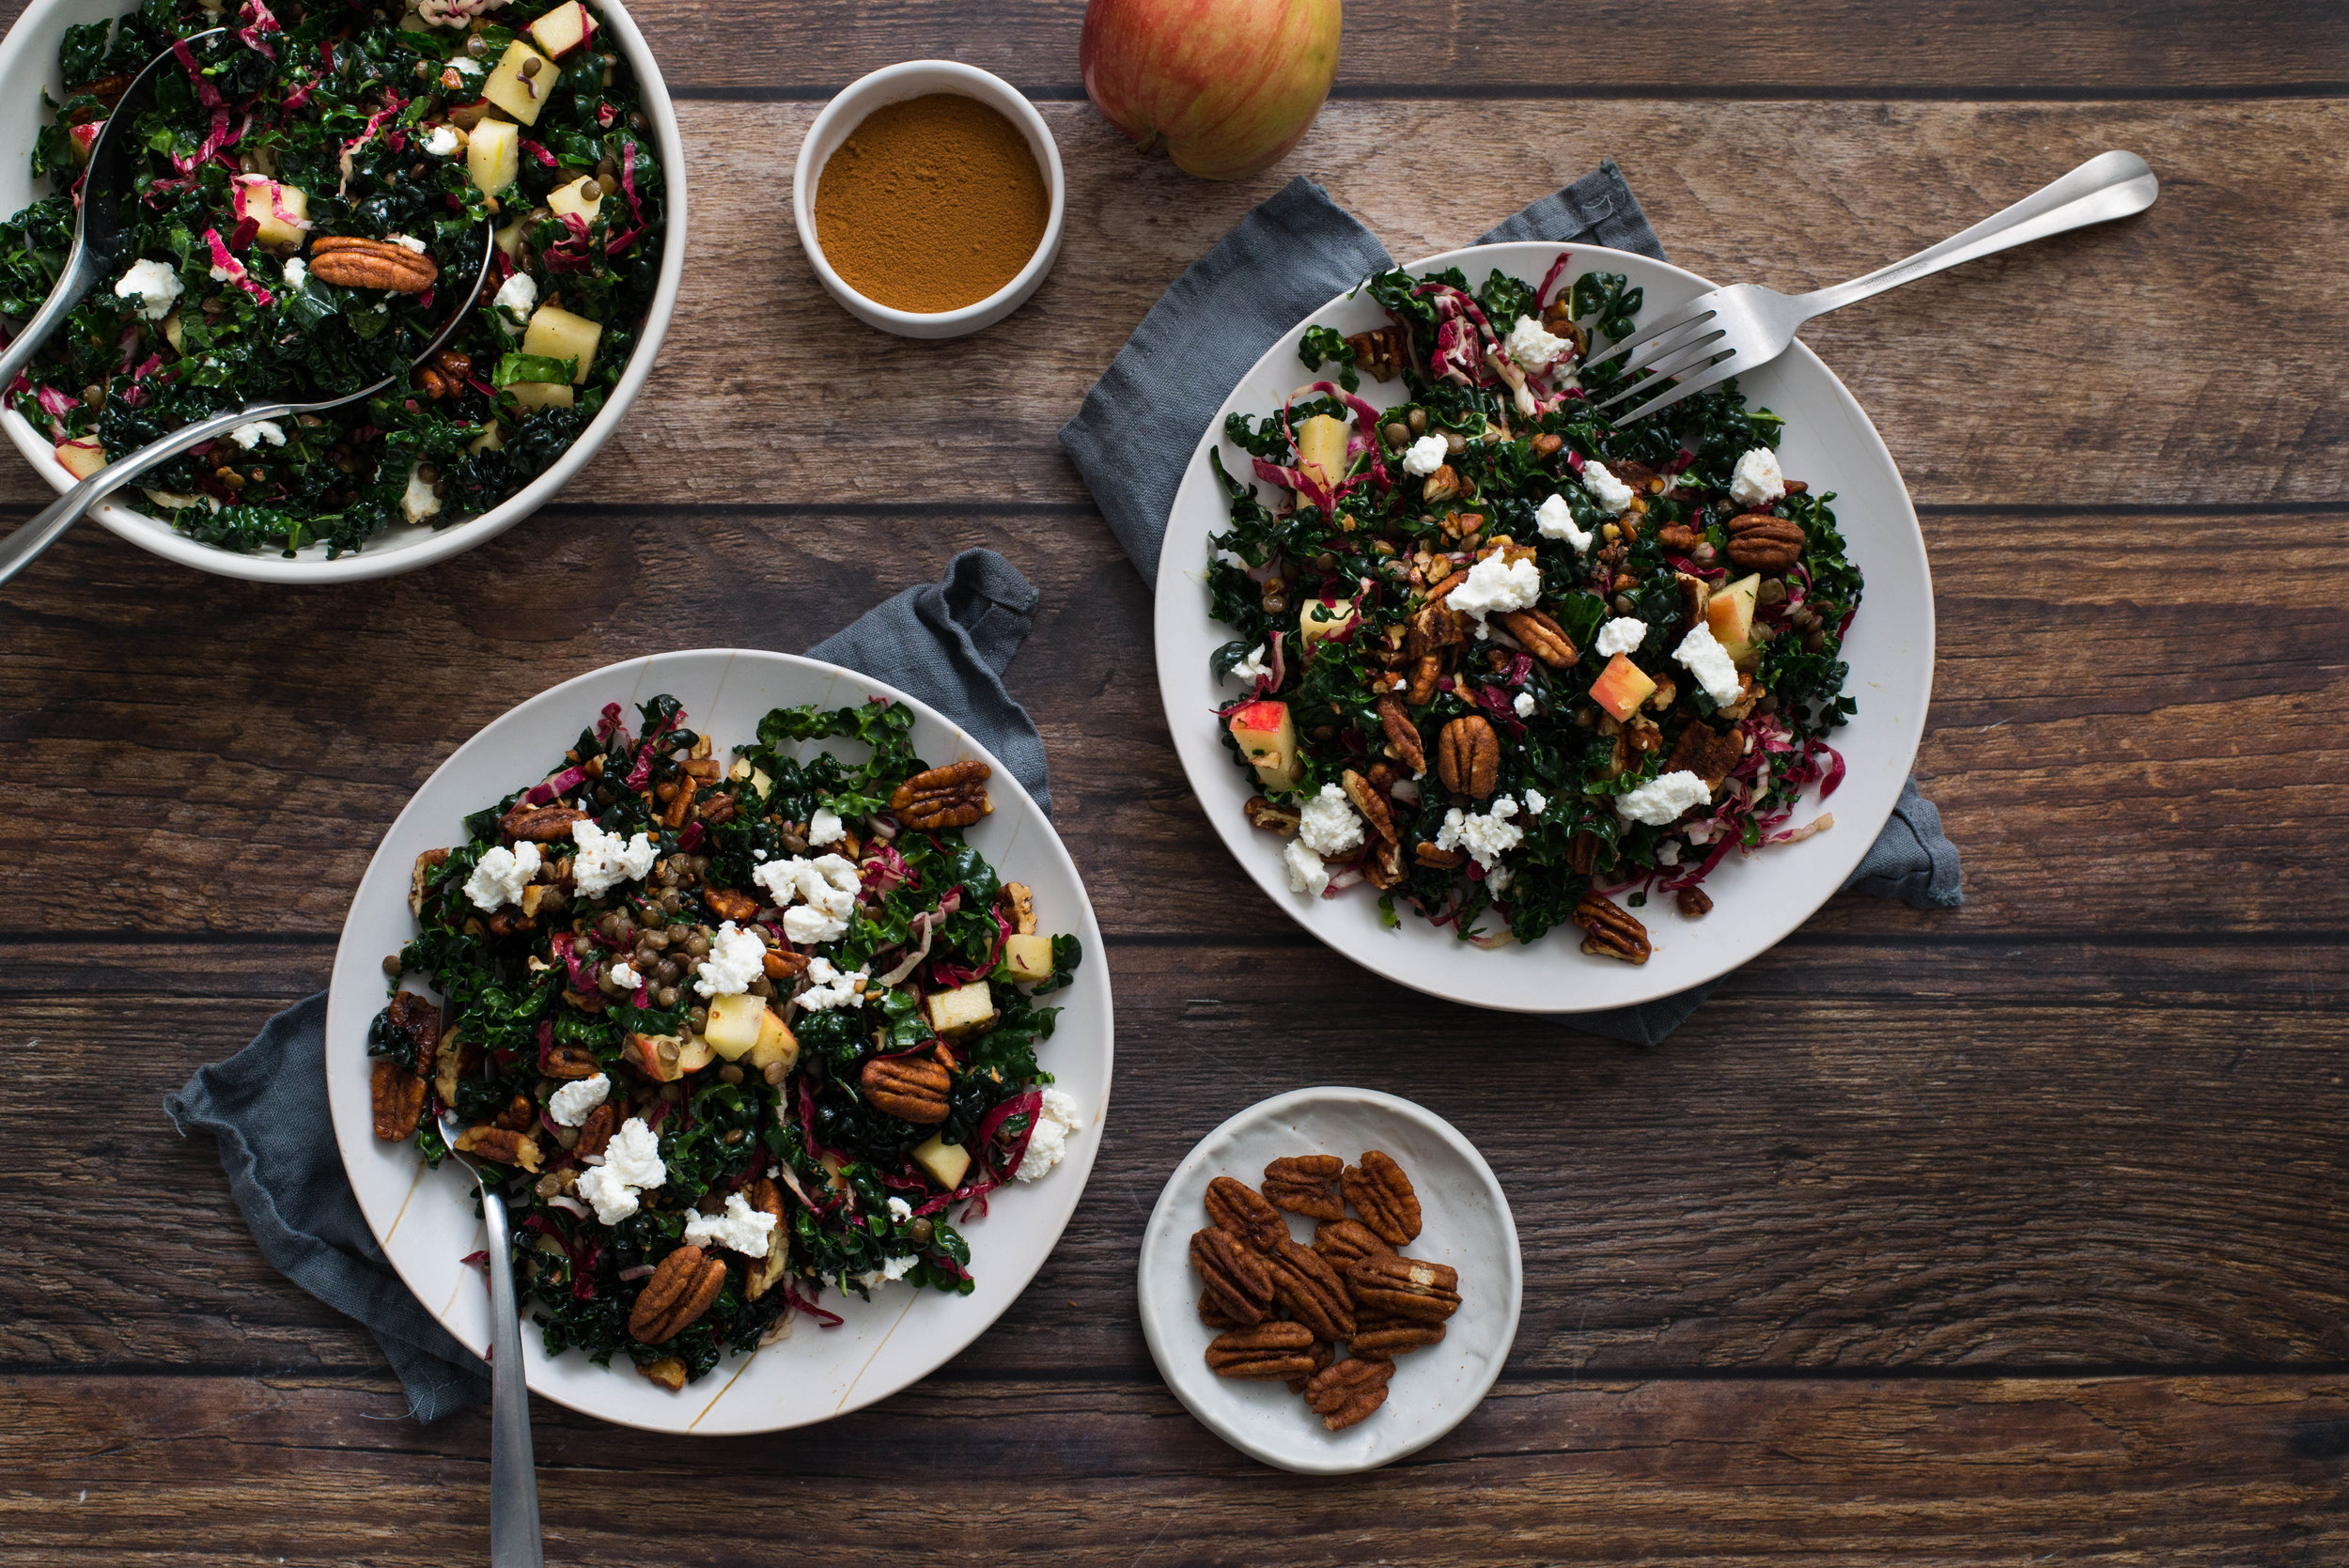 Kale and Lentil Salad with Pecans and Goat Cheese